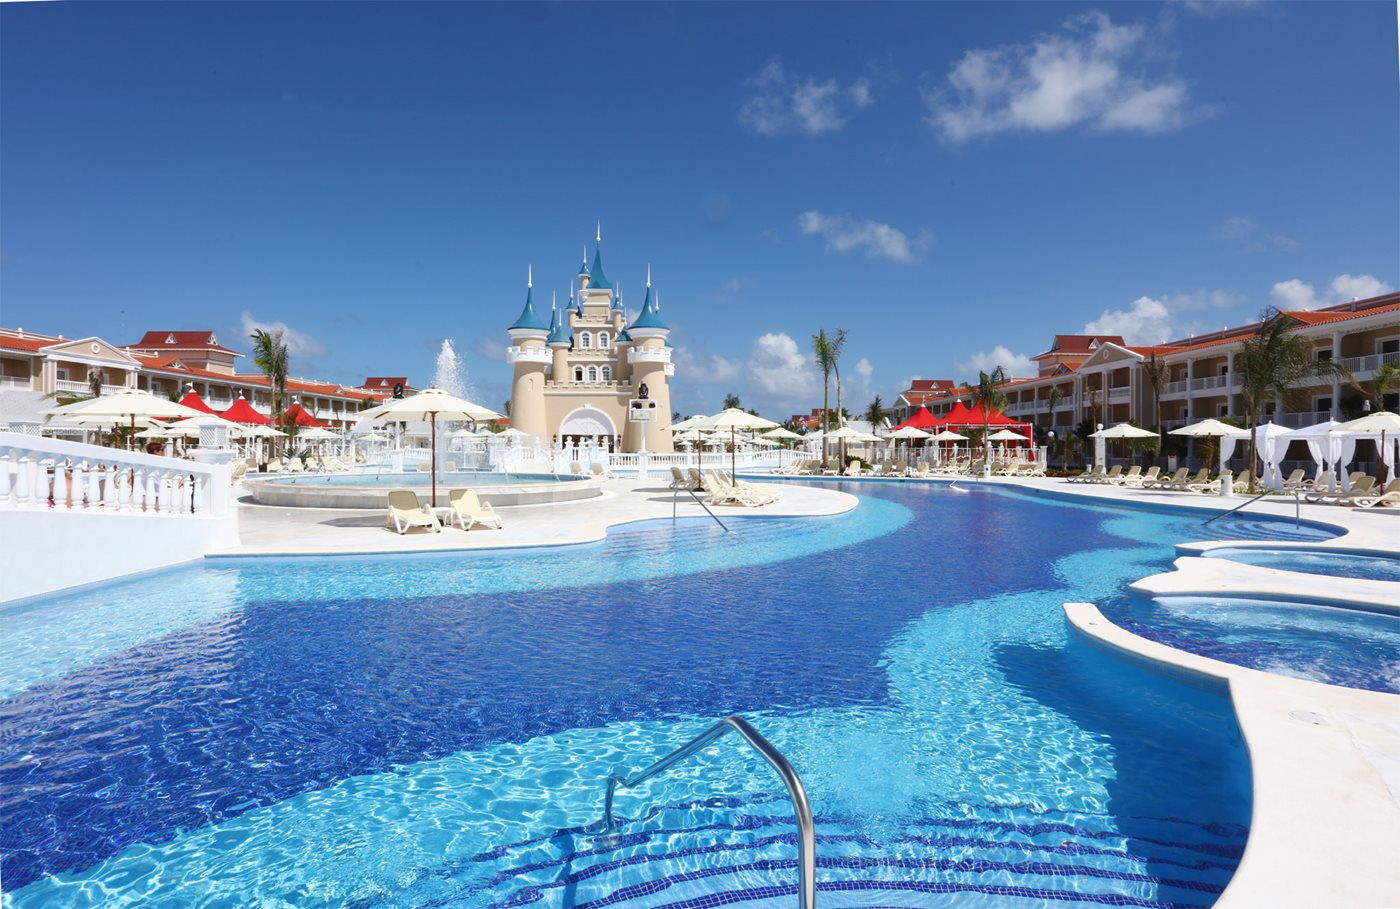 Luxury-Bahia-Principe-Fantasia-Pool-003